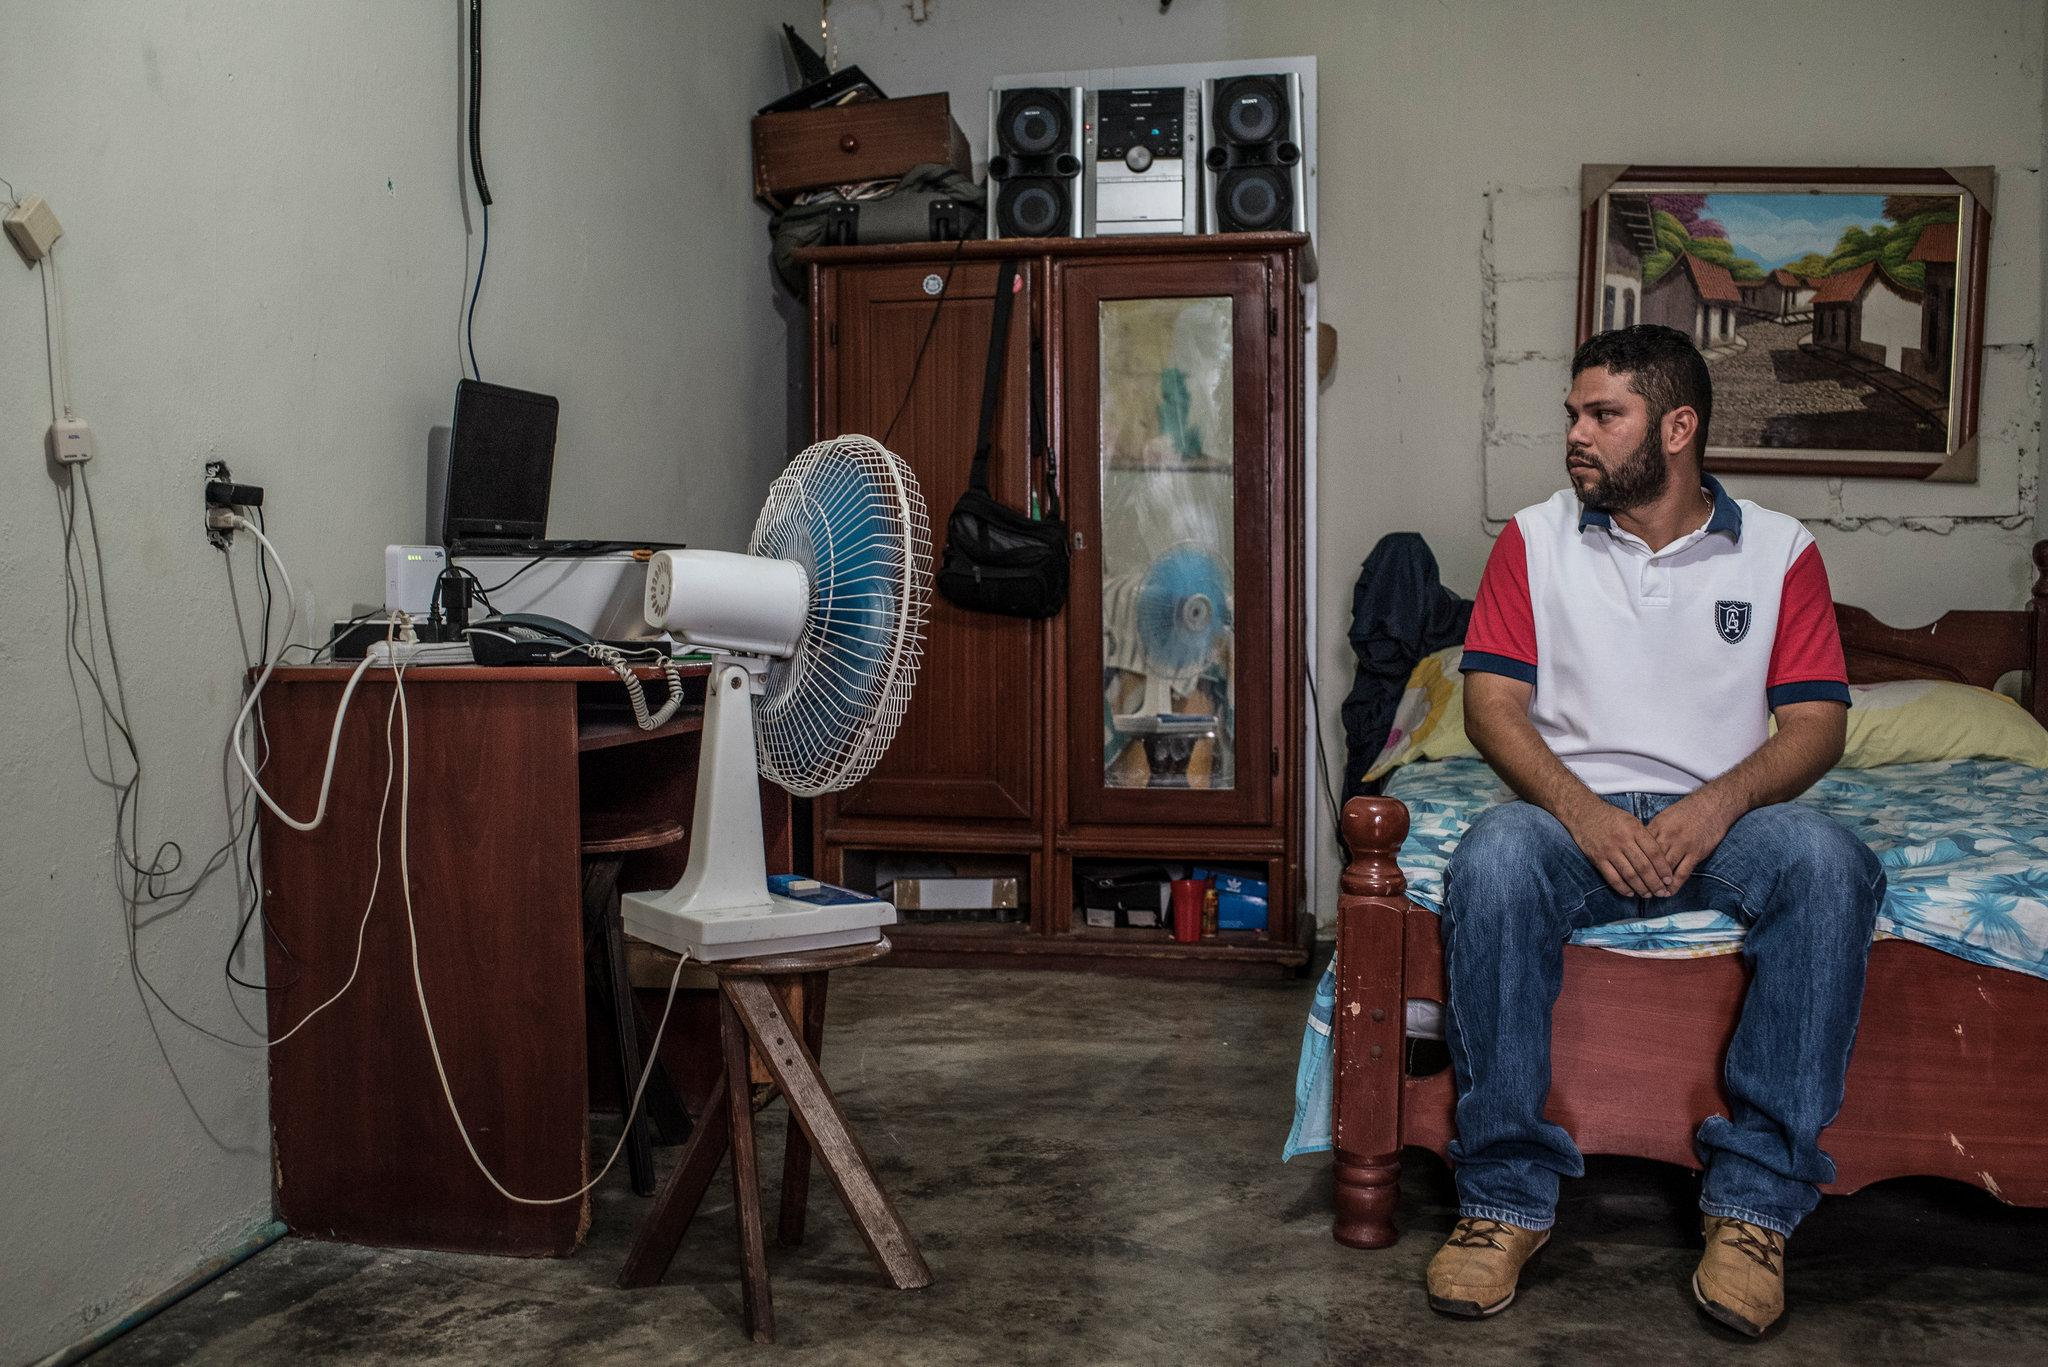 Junior Martínez, 28, who has worked in Venezuela's oil industry for eight years, is now planning to leave the country to find a job.CreditThe New York Times